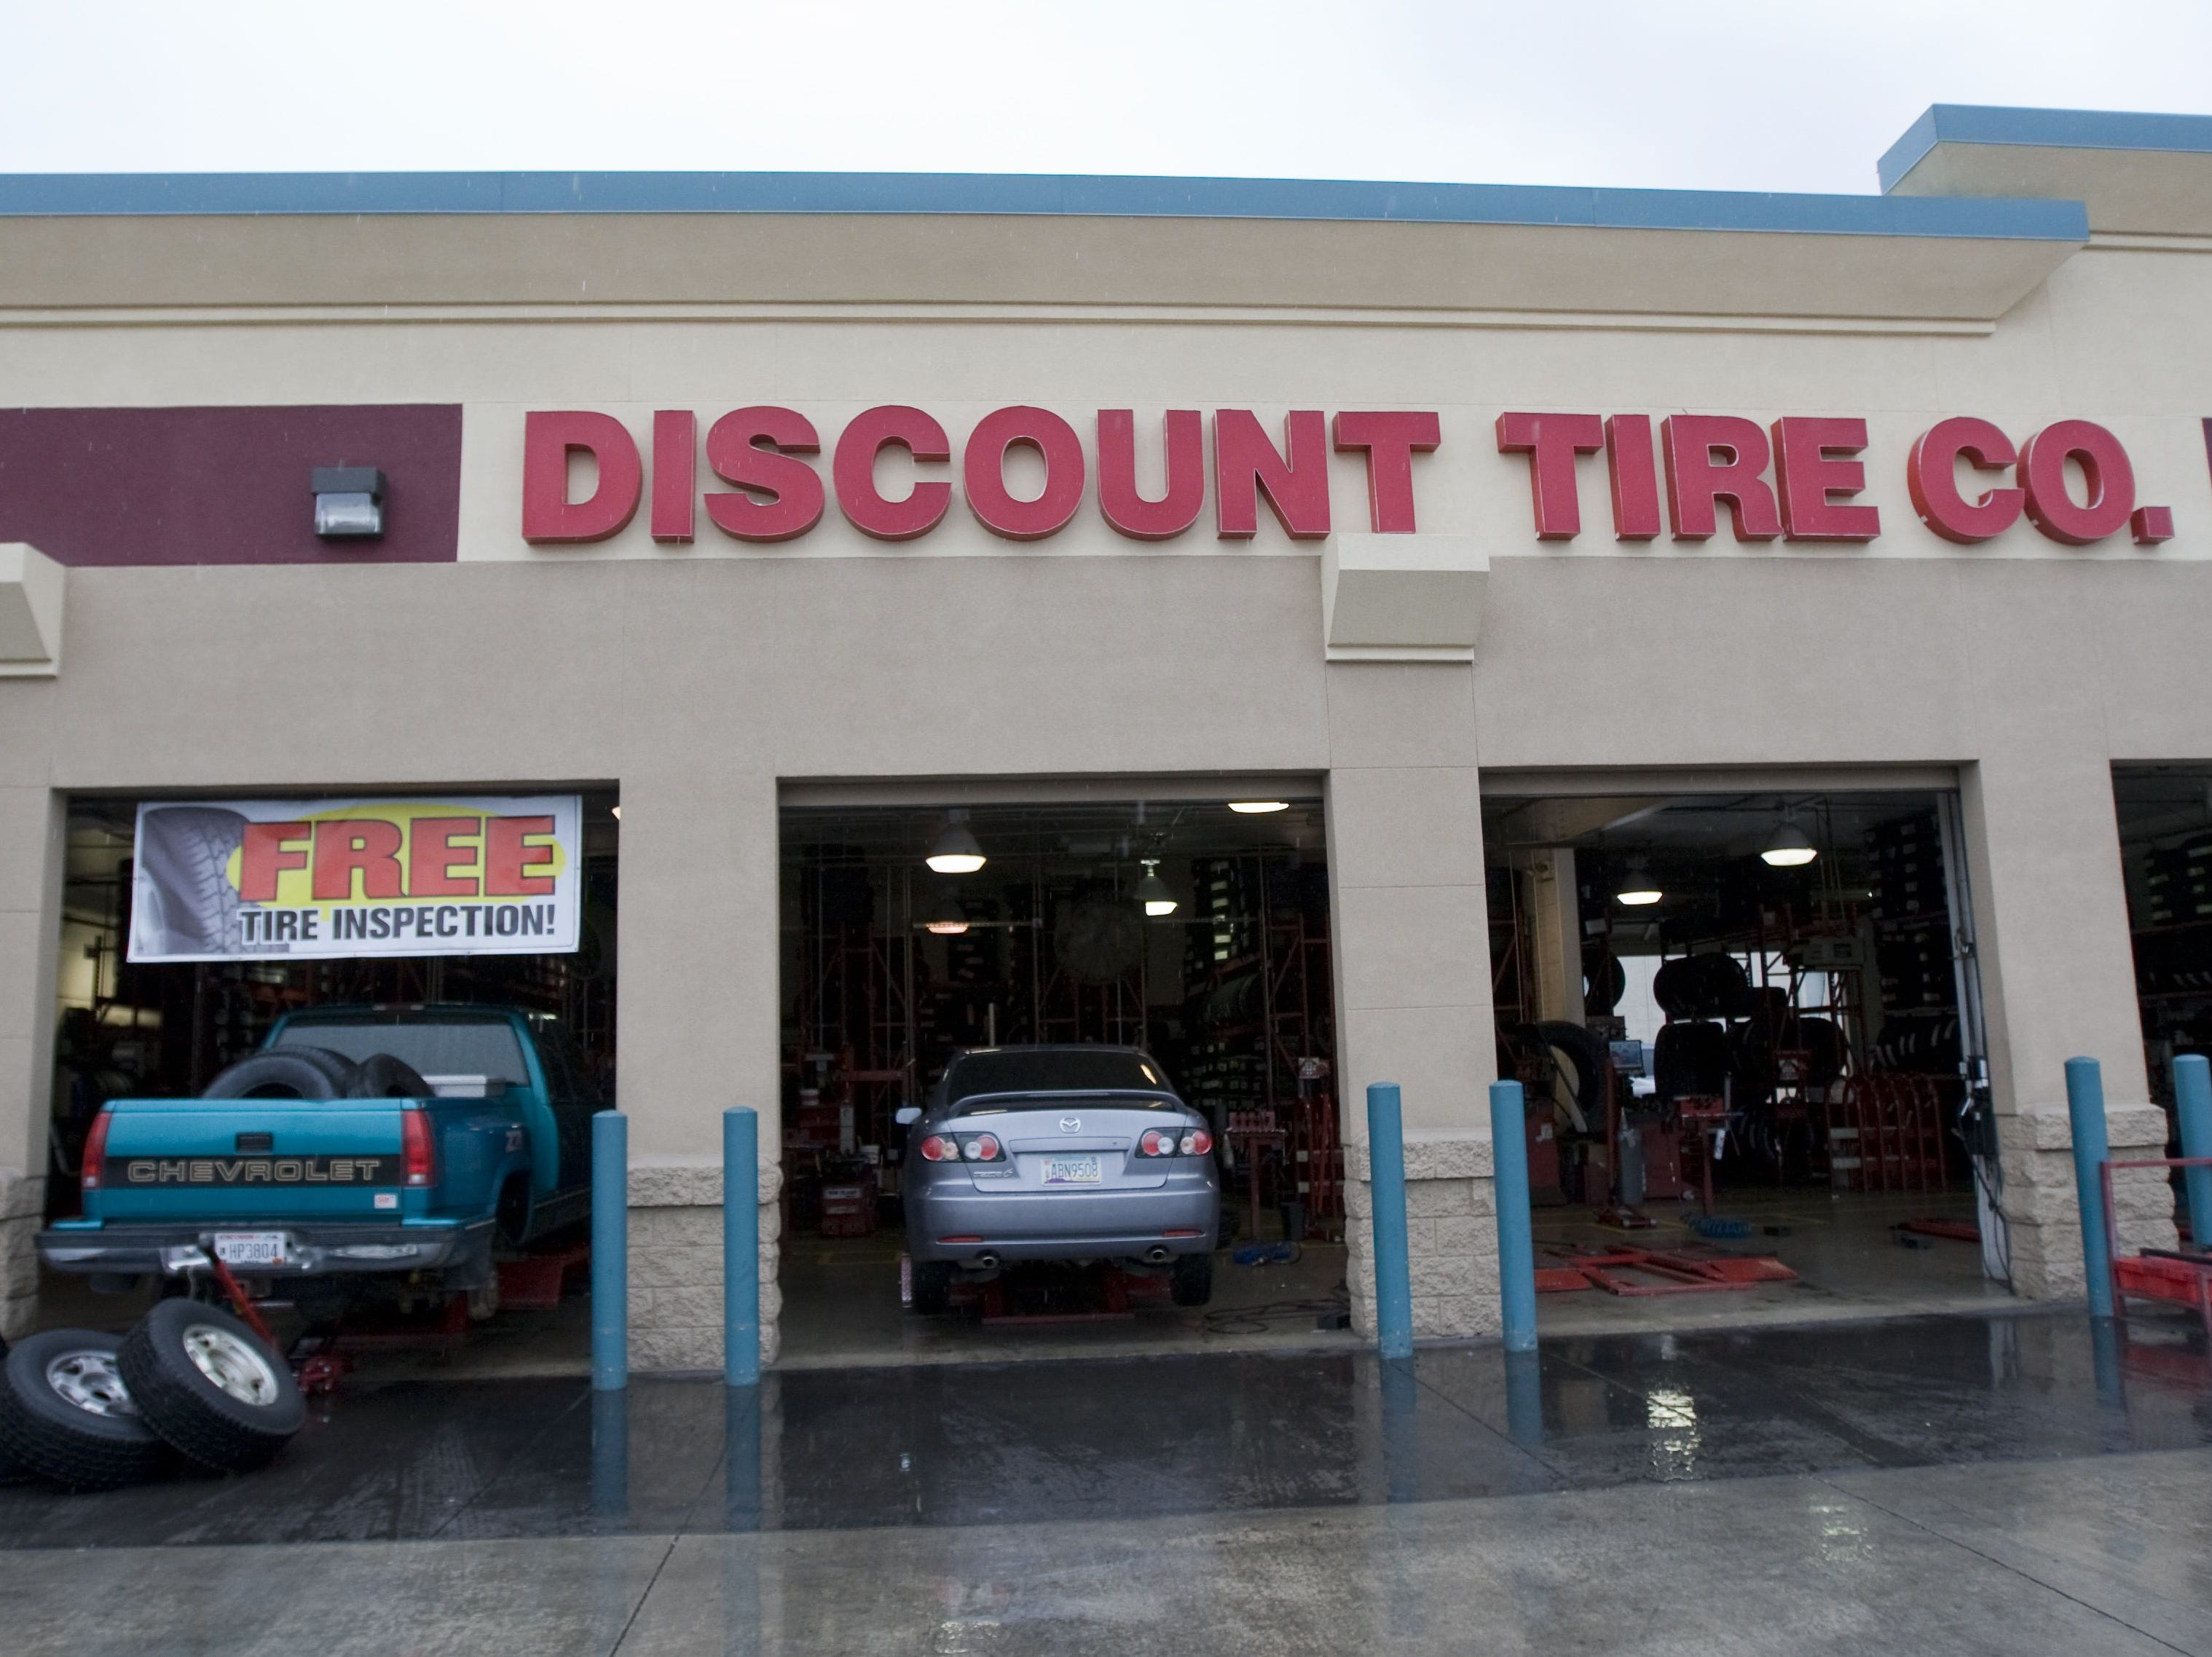 No. 74: Discount Tire | Automotive tires, wheels | 2019 employees: 2,612 | 2018 employees: 2,370 | Ownership: Private | Headquarters: Scottsdale | www.discounttire.com